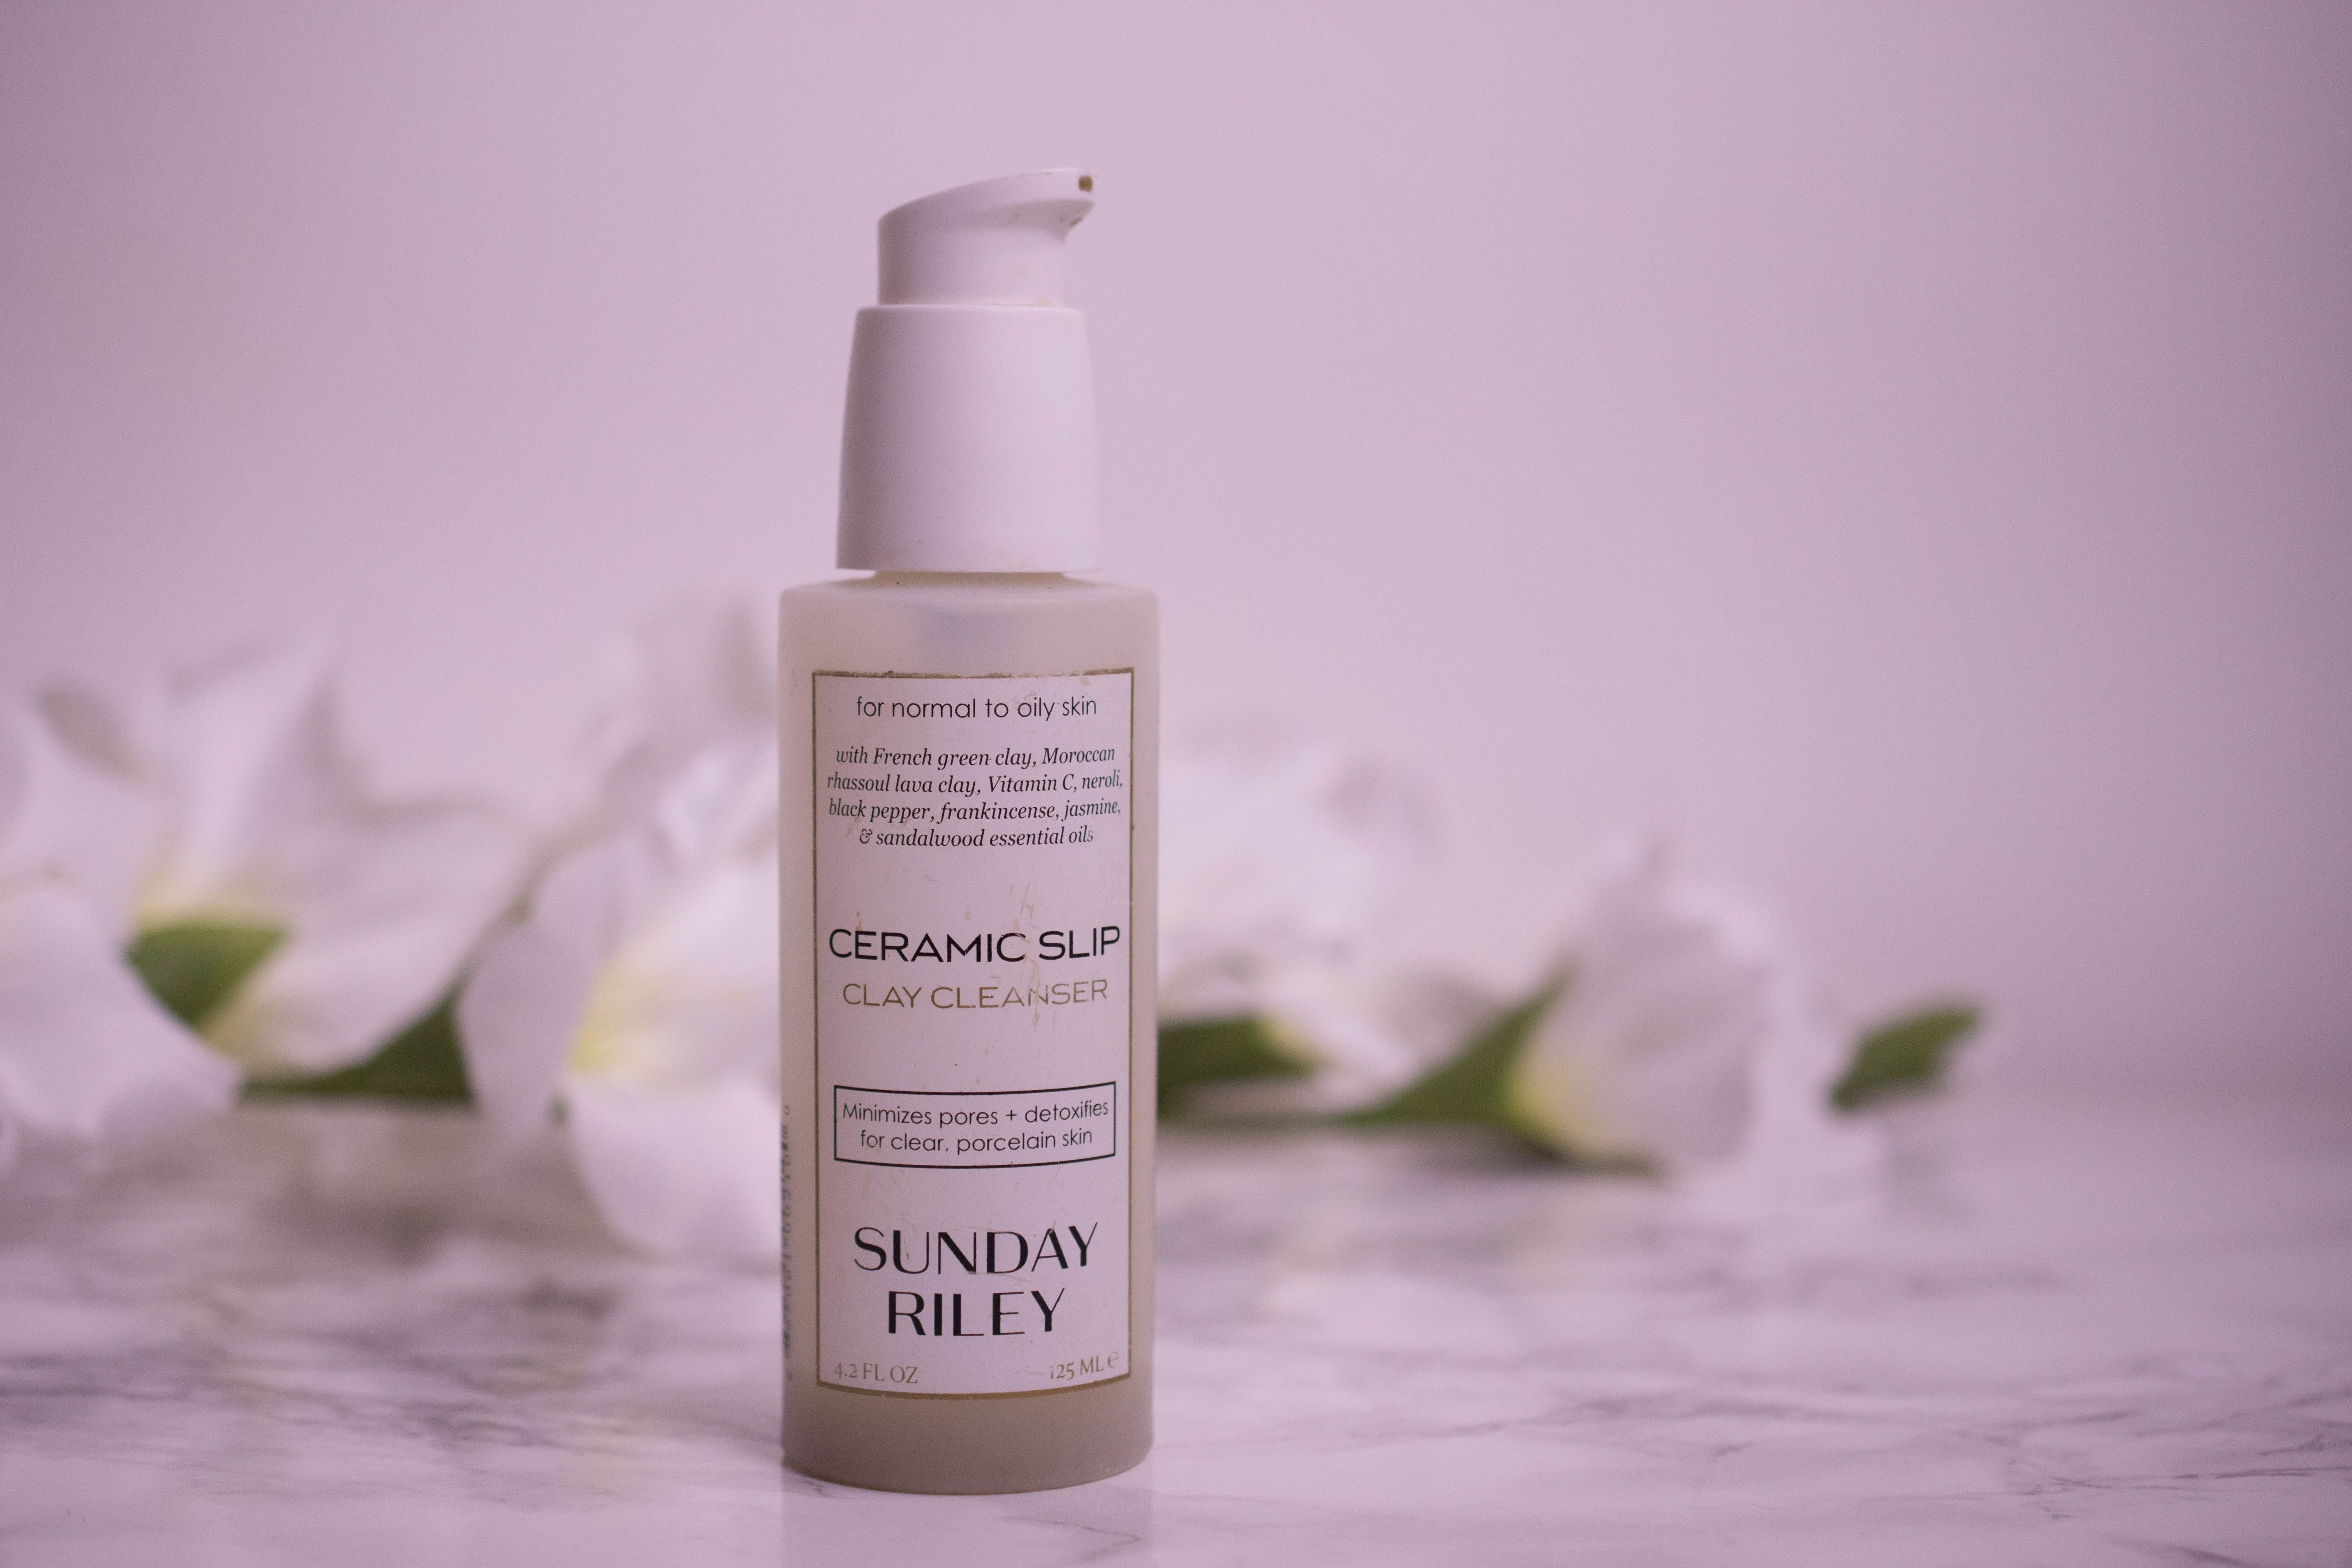 Sunday riley ceramic slip cleanser the not so foaming face